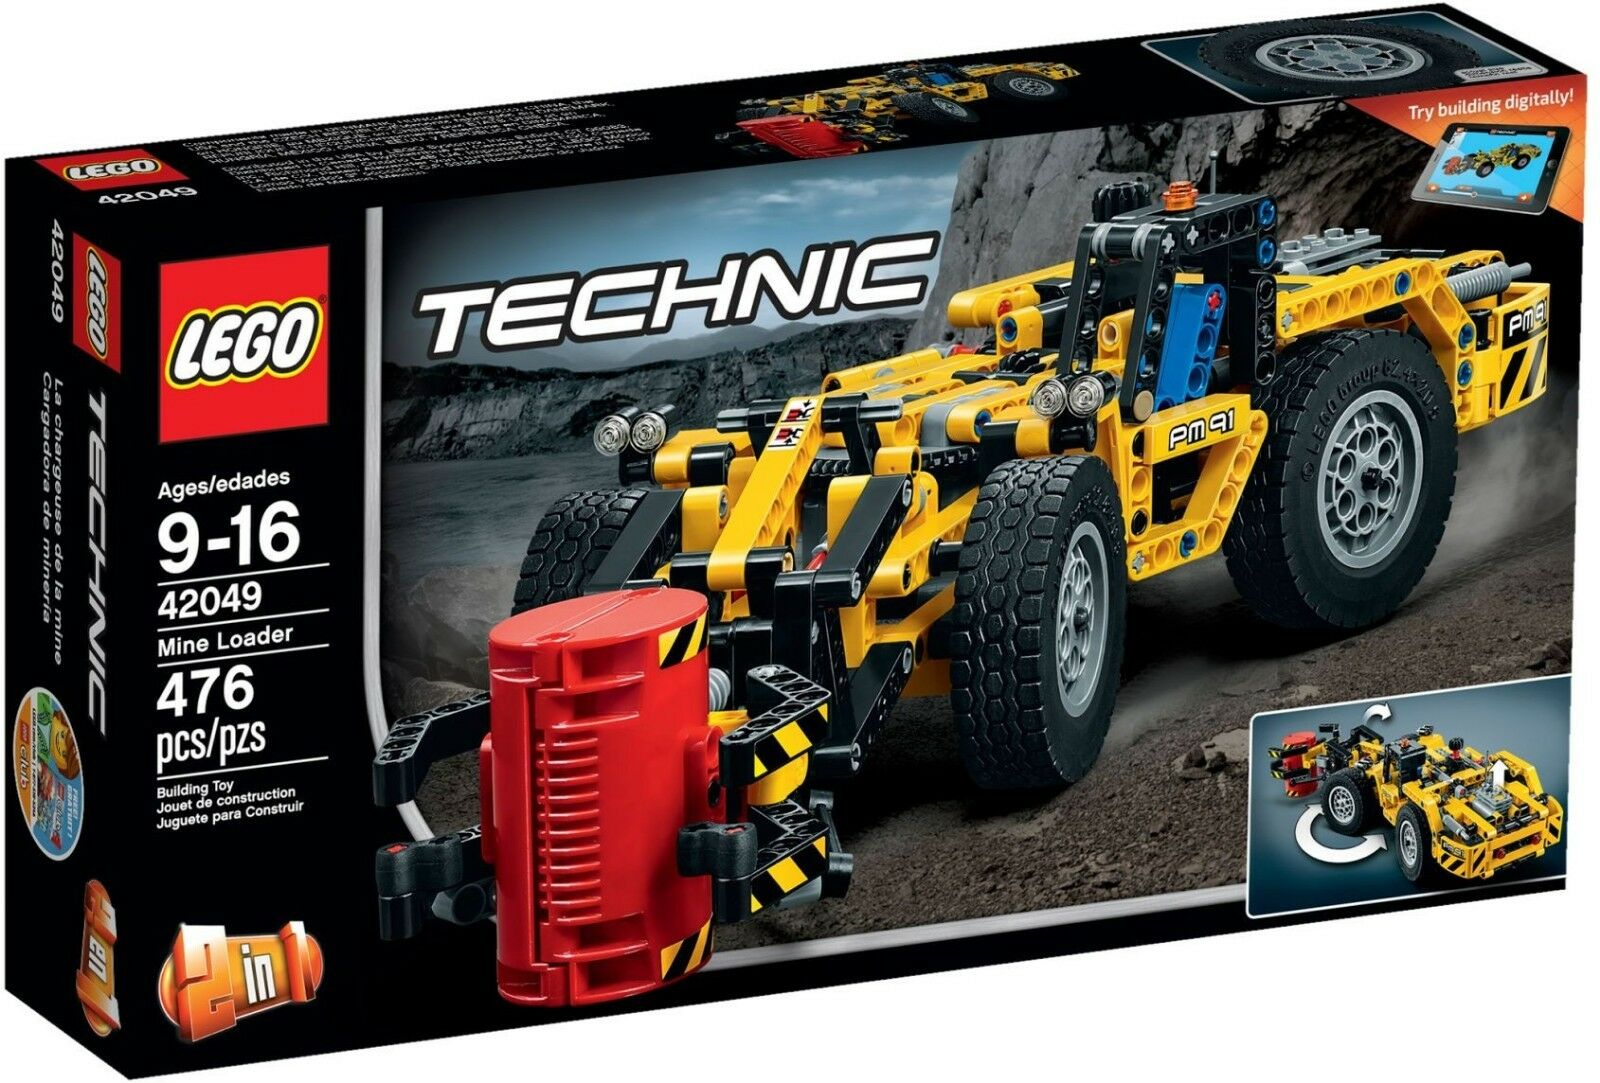 Lego 42049 Technic Mine Loader BRAND NEW